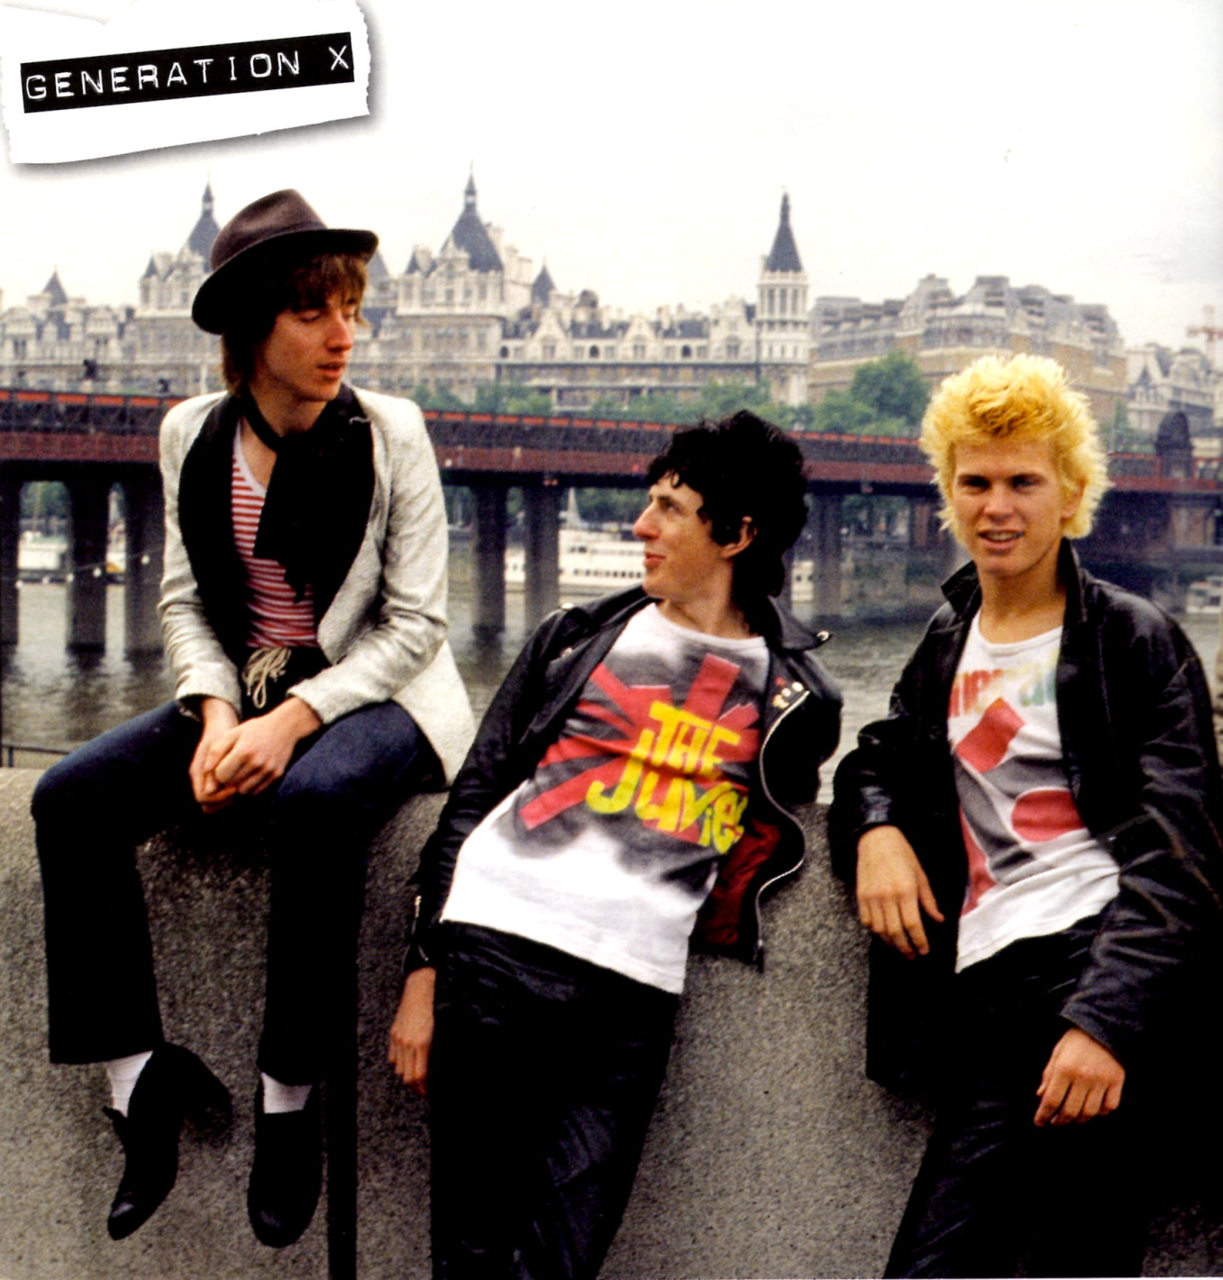 generation x A label attributed to people born during the 1960s and 1970s members of generation x are often described as cynical or disaffected, though this reputation obviously does not apply to all people born during this era.